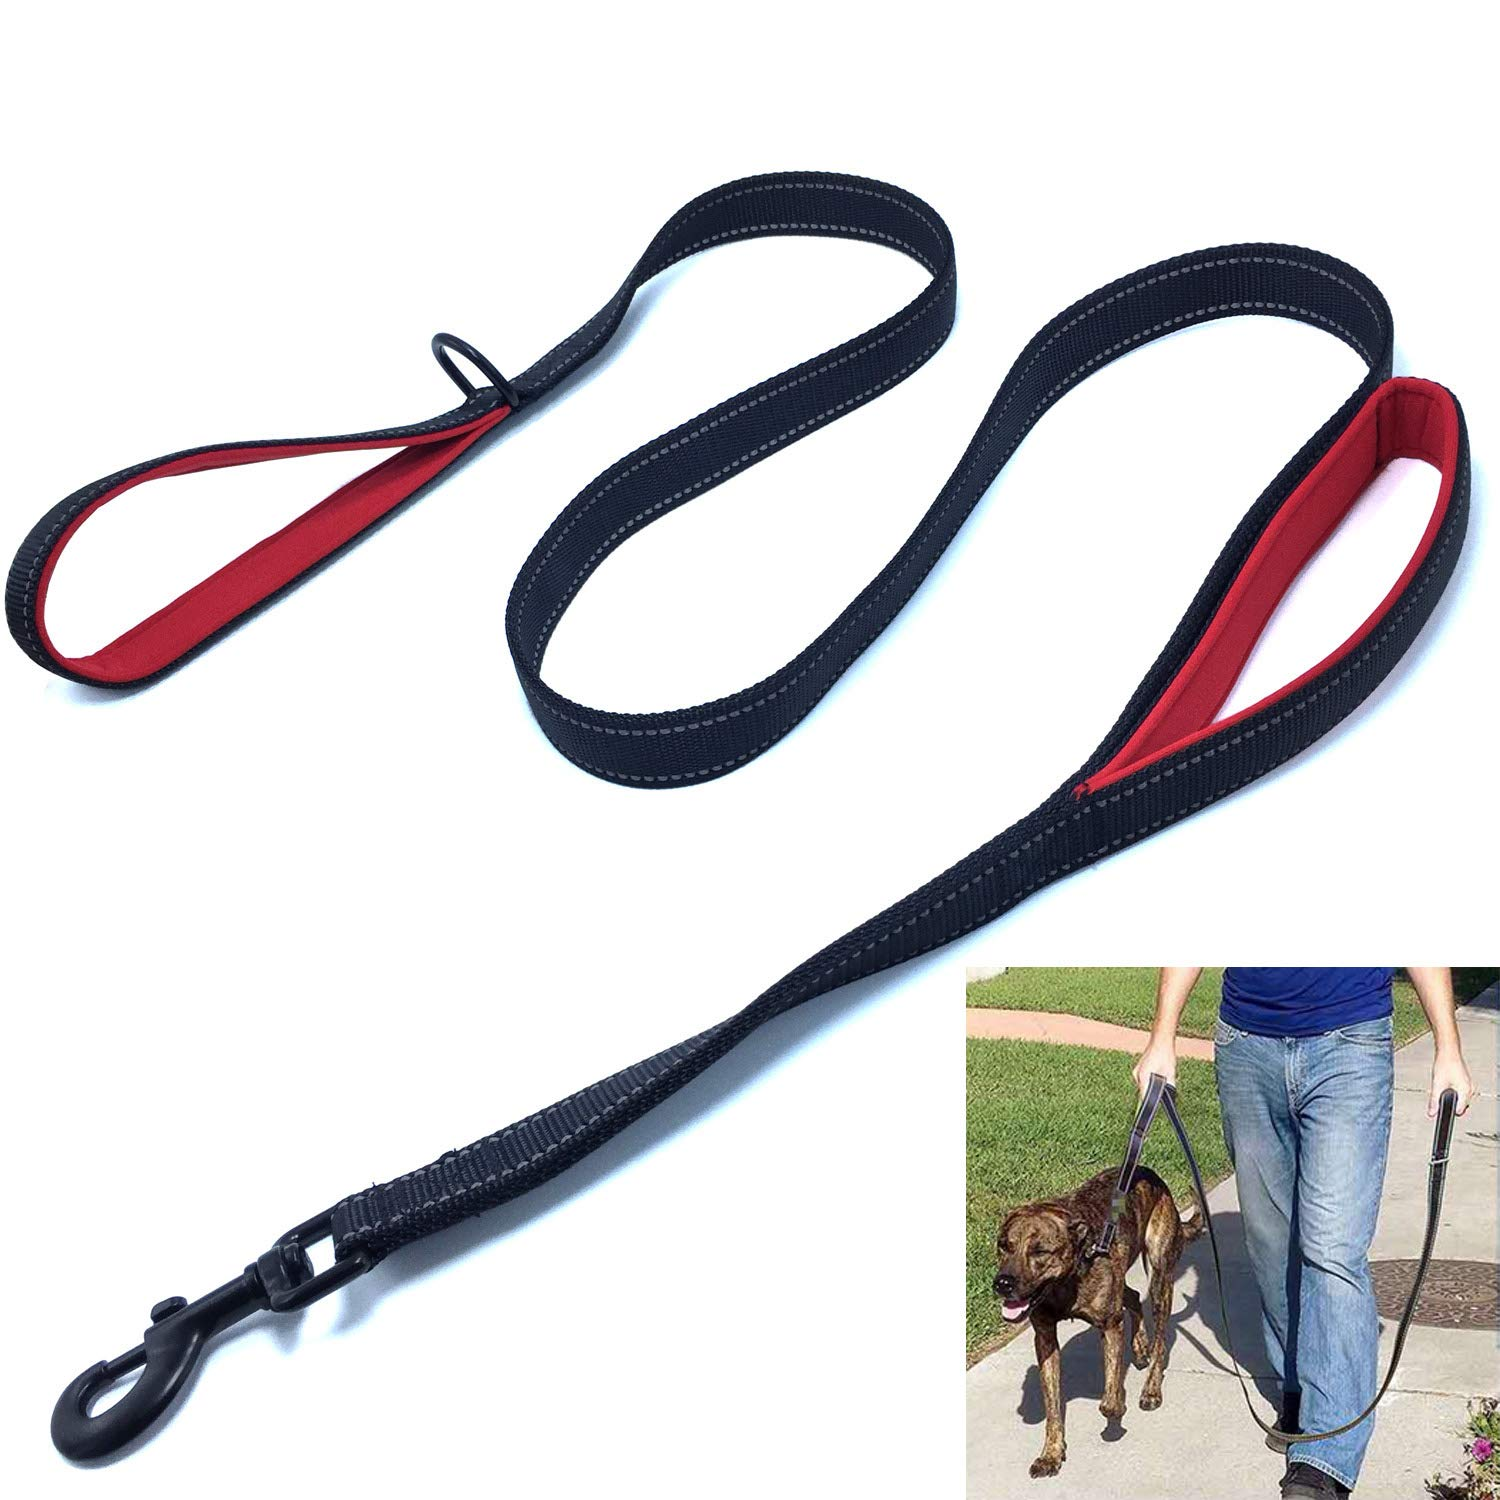 Black Red 5 ft Black Red 5 ft Yzsfirm 5 Ft Reflective Dog Leash Double Padded Soft Handles Dog Leashes 1 Inch Wide Black Red Heavy Duty Pulling Dog Leads Control Safety Training Leash for Smal Large and Medium Dogs(Black+Red)